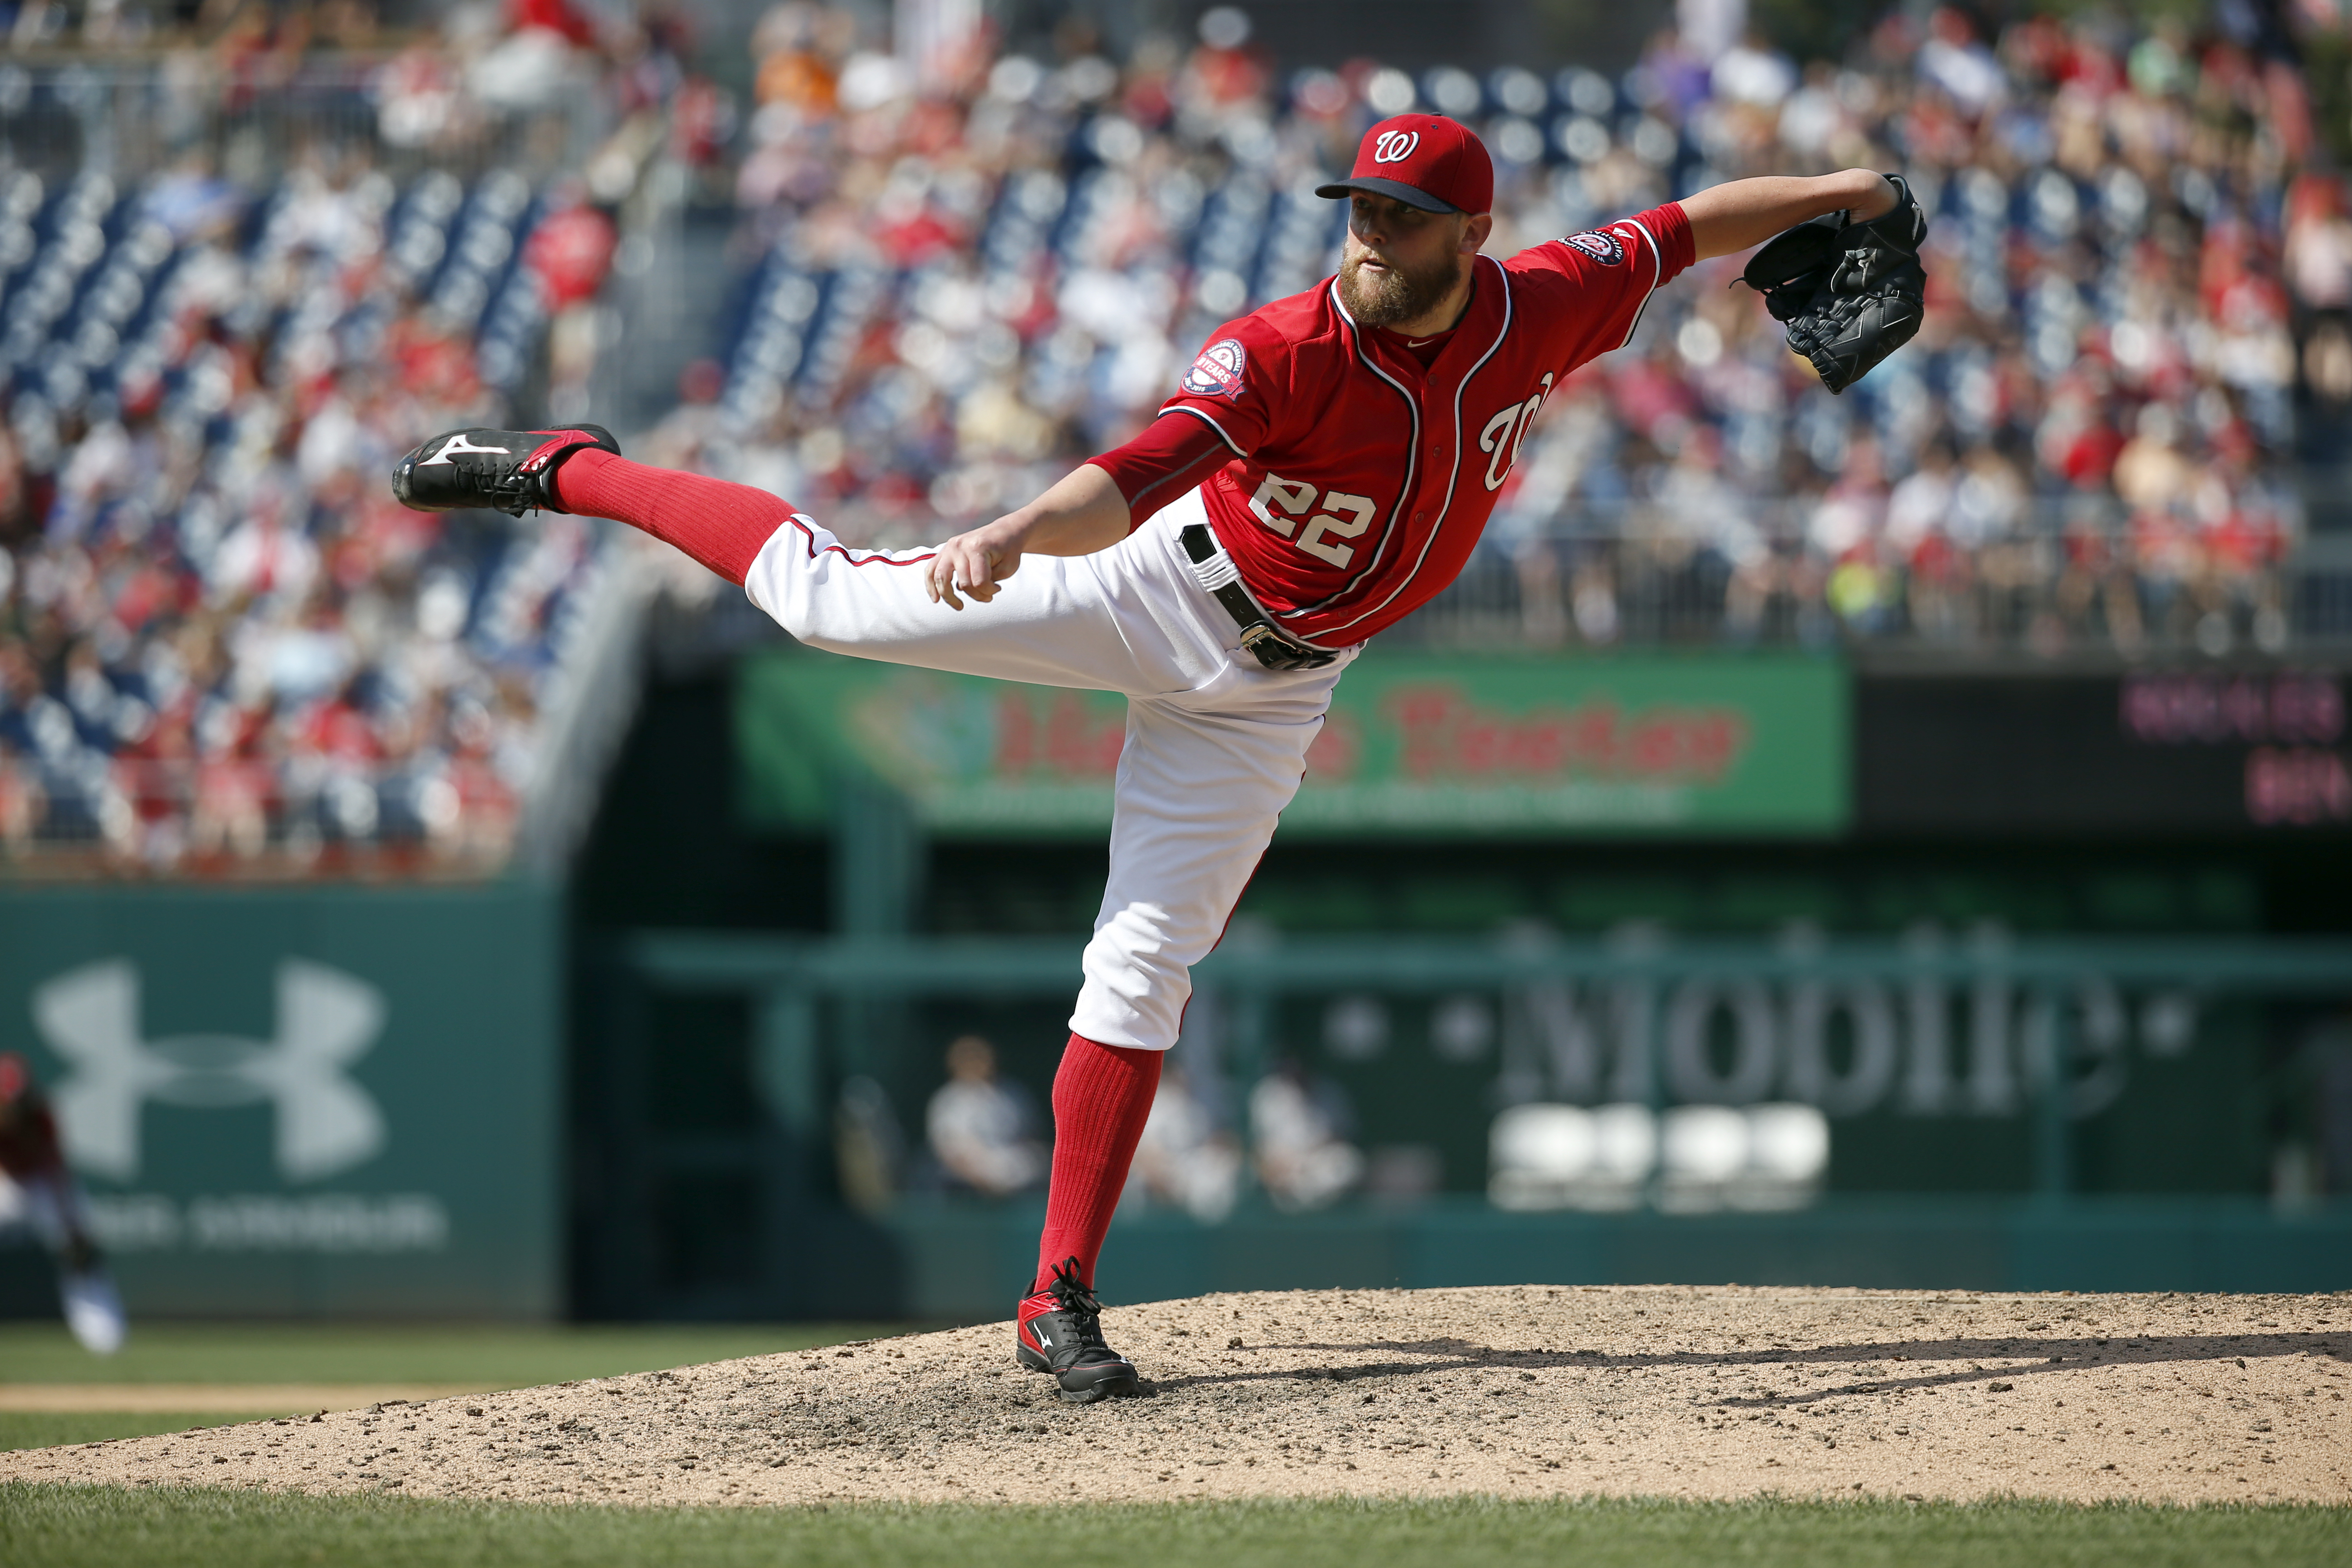 Washington Nationals relief pitcher Drew Storen (22) throws during the eighth inning of a baseball game against the Colorado Rockies at Nationals Park, Sunday, Aug. 9, 2015, in Washington. The Rockies won 6-4. (AP Photo/Alex Brandon)